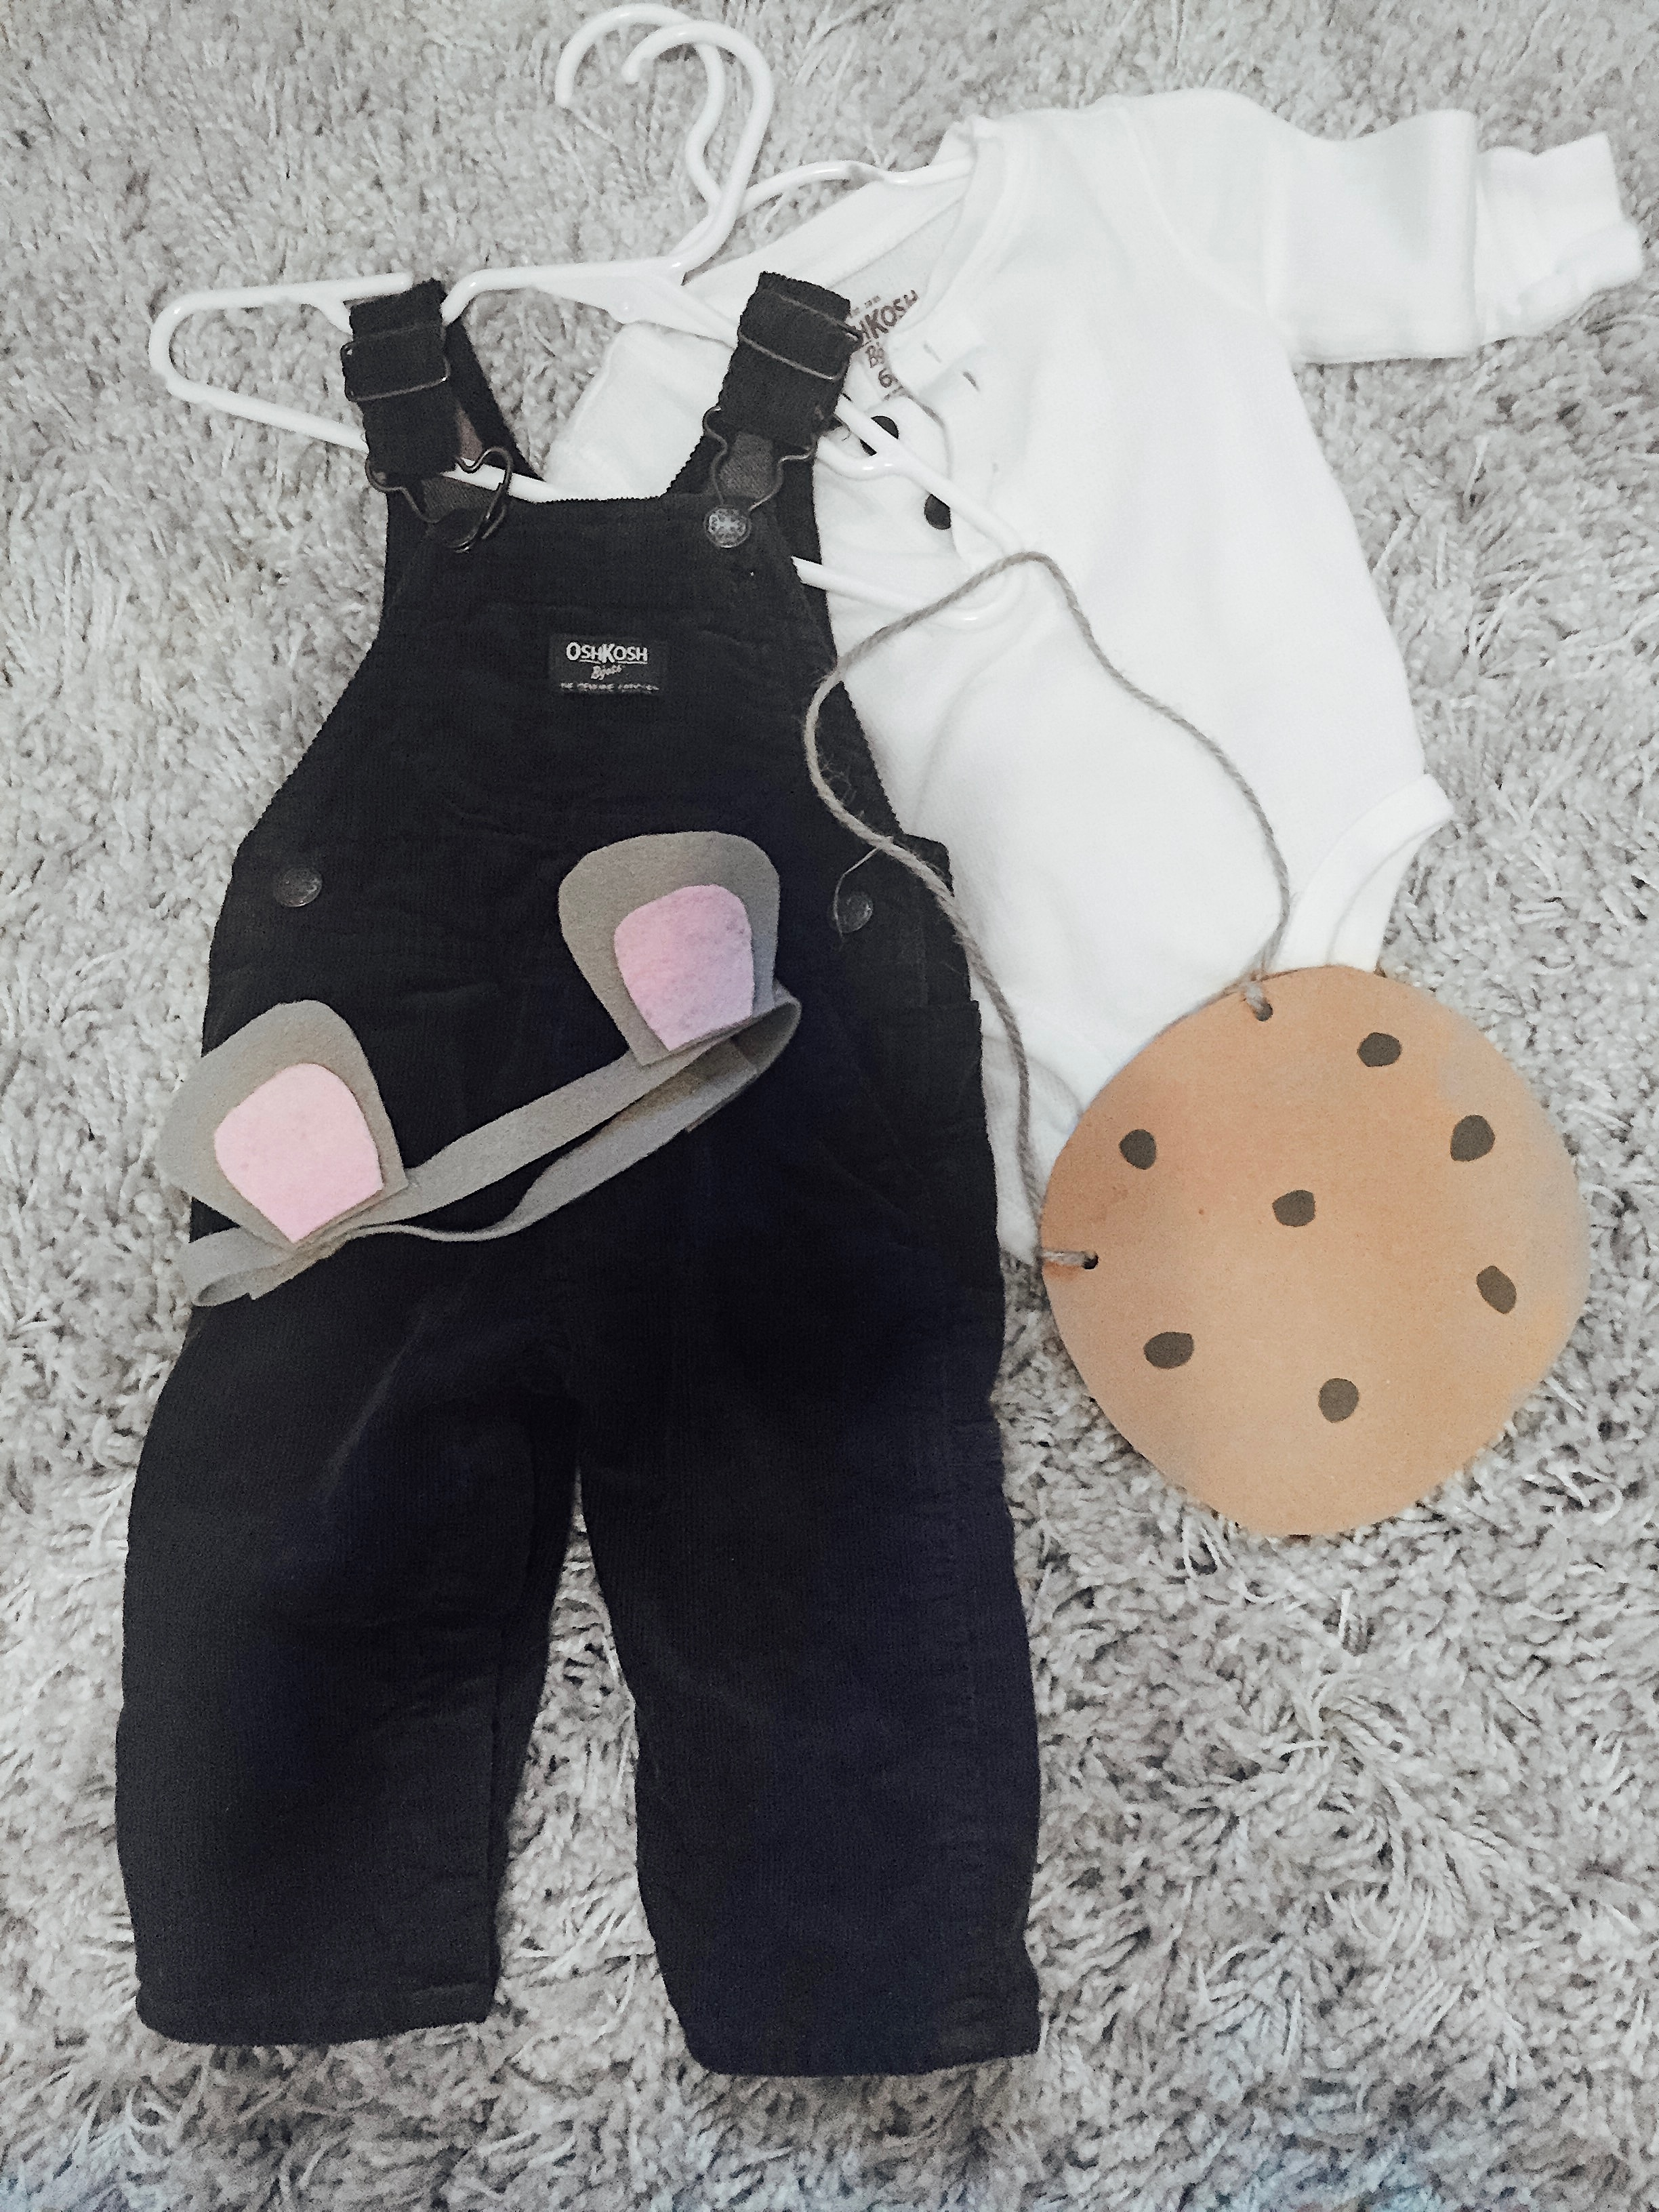 If You Give a Mouse a Cookie Costume